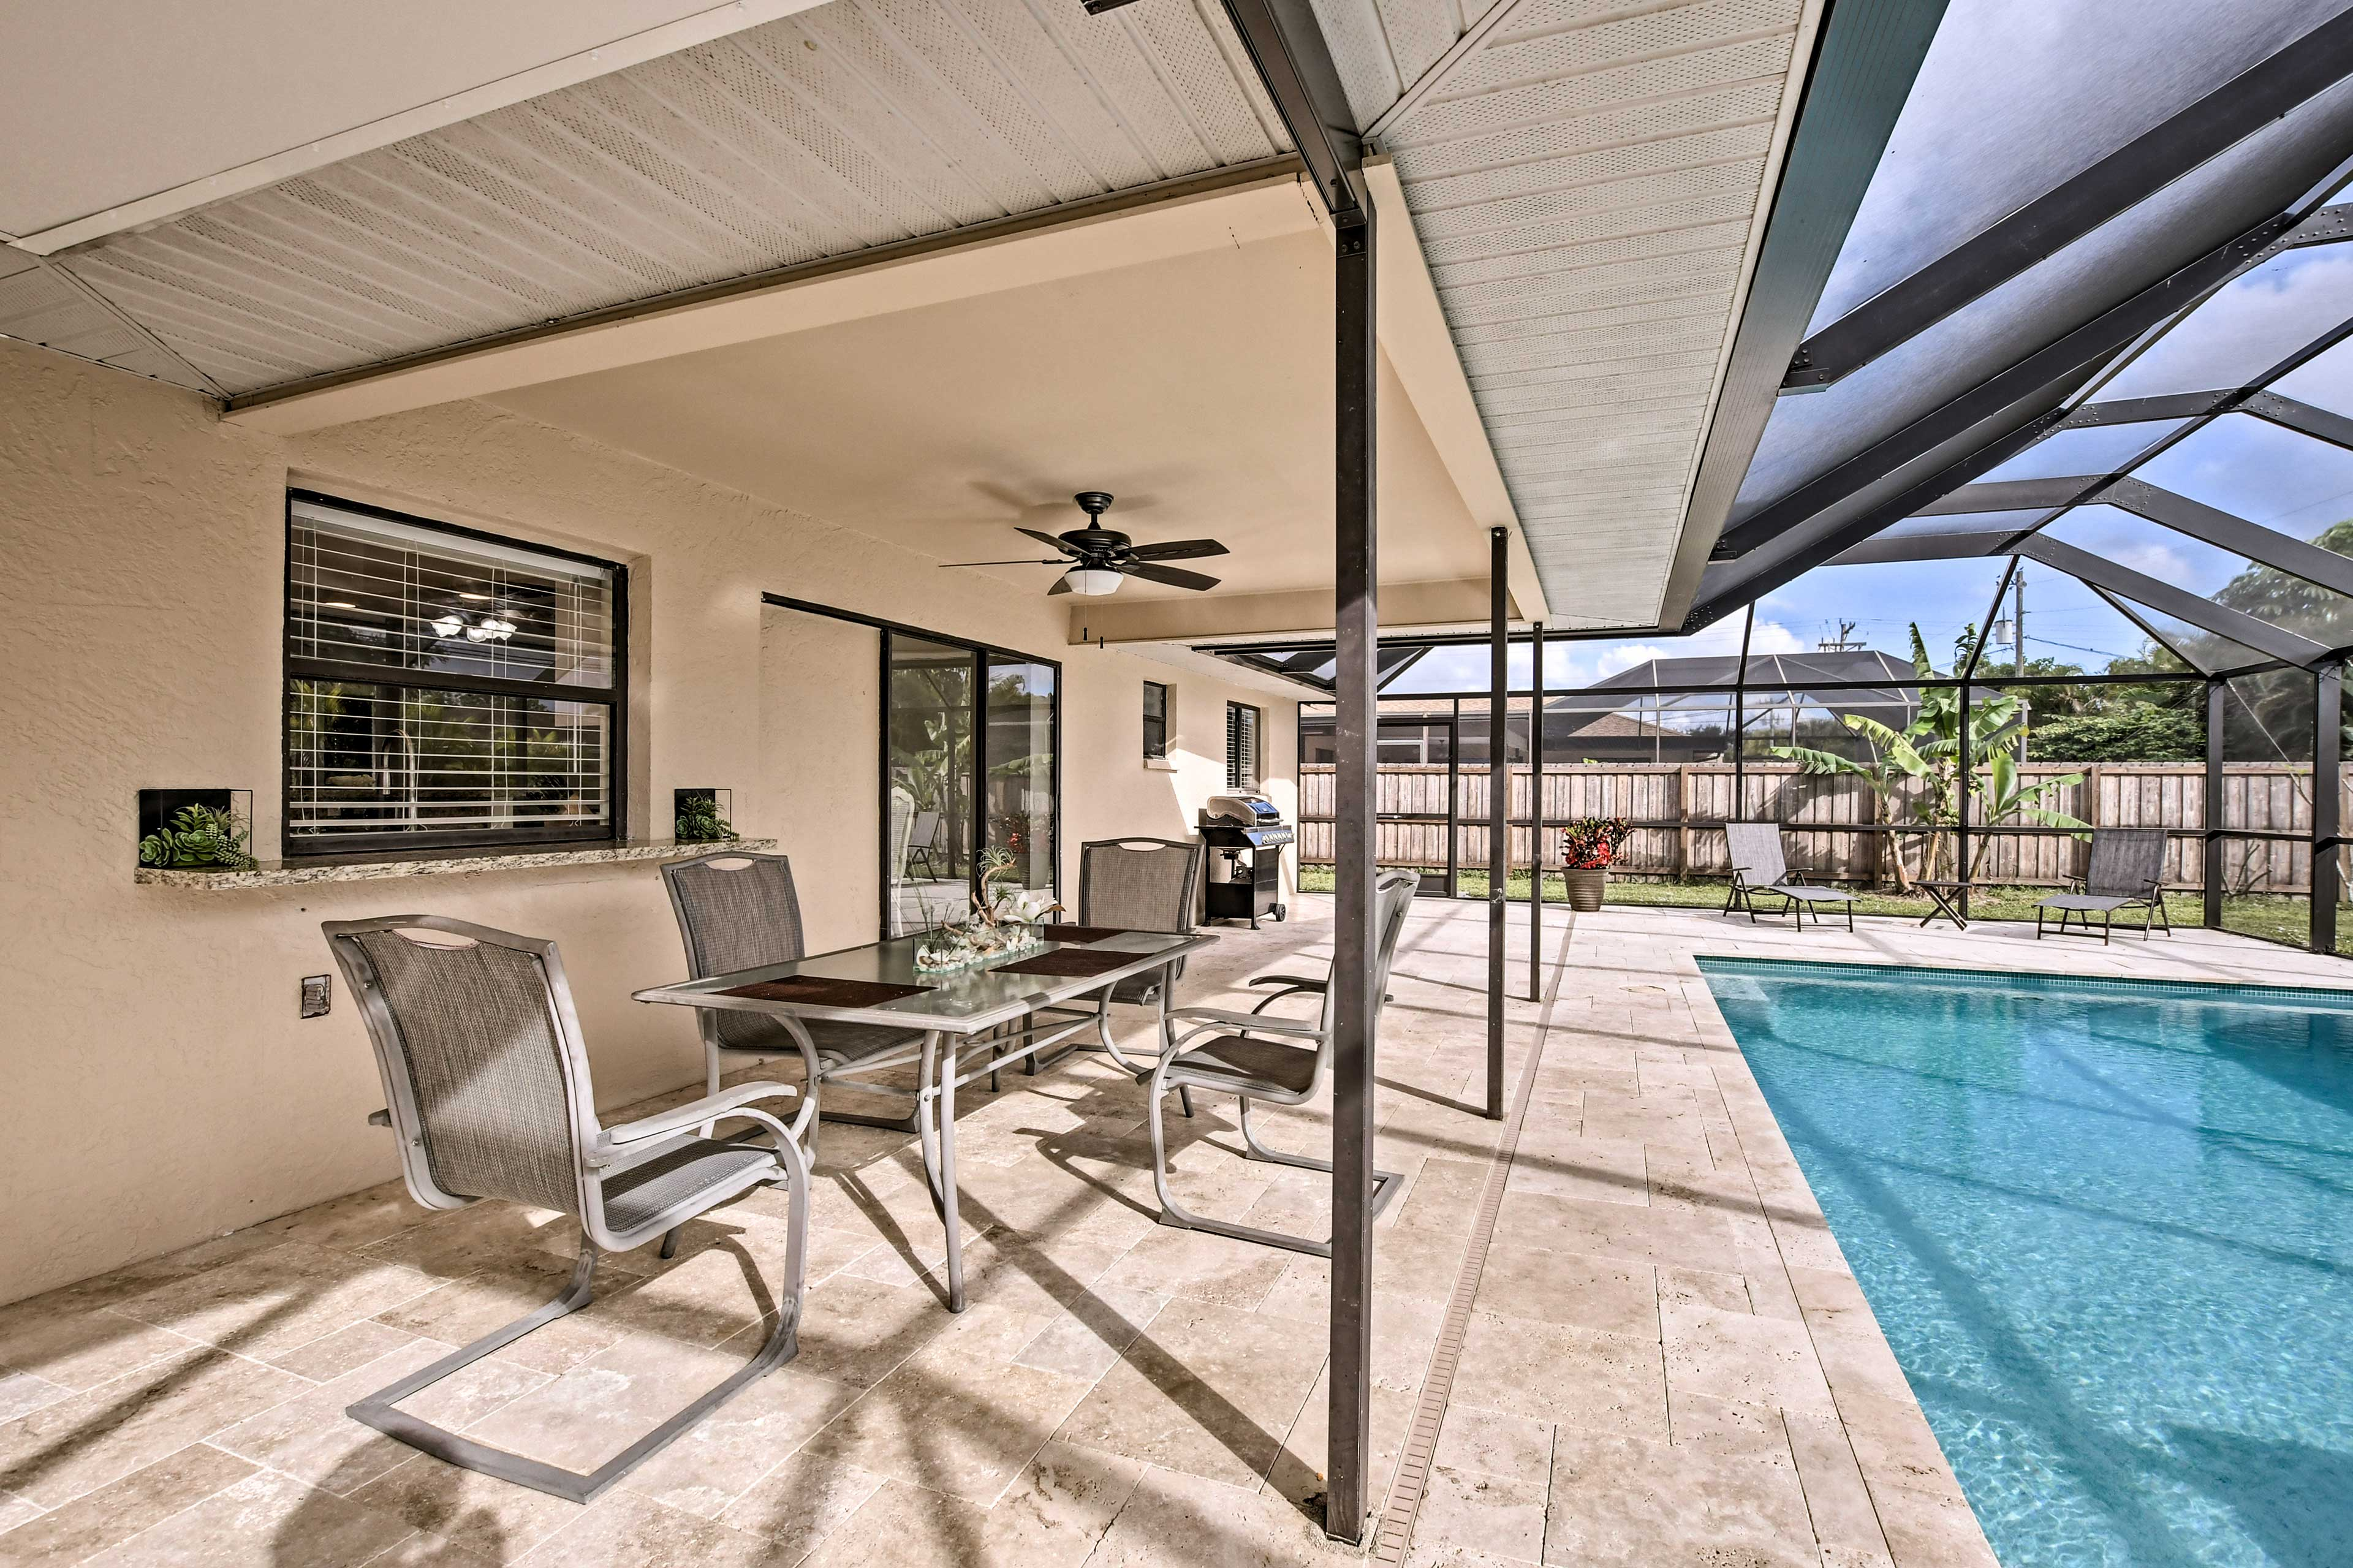 The yard includes a pool, lanai, and covered patio.